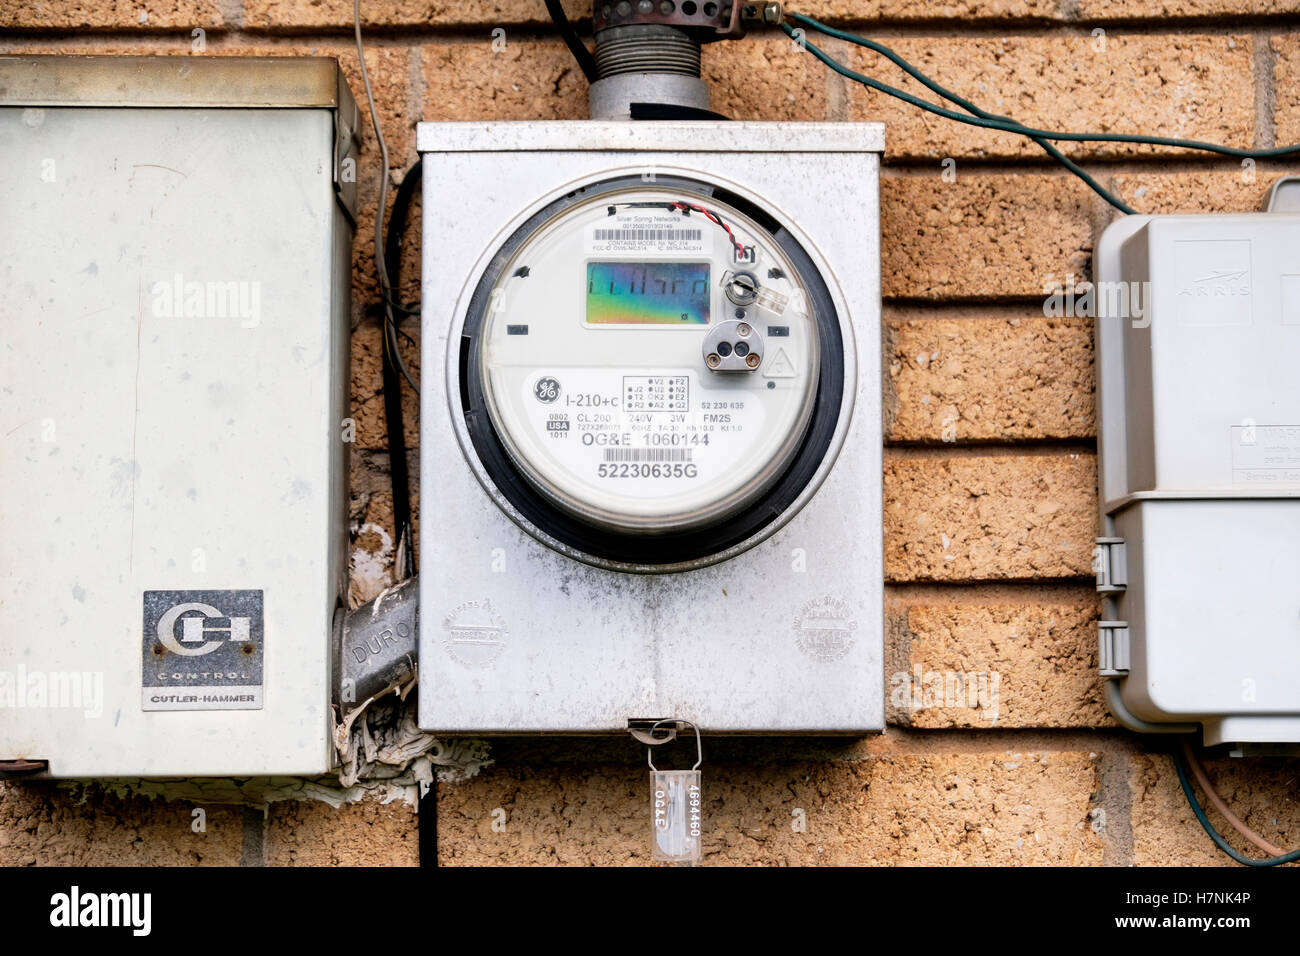 An electric meter attached to the back of a brick home in Oklahoma, USA. - Stock Image